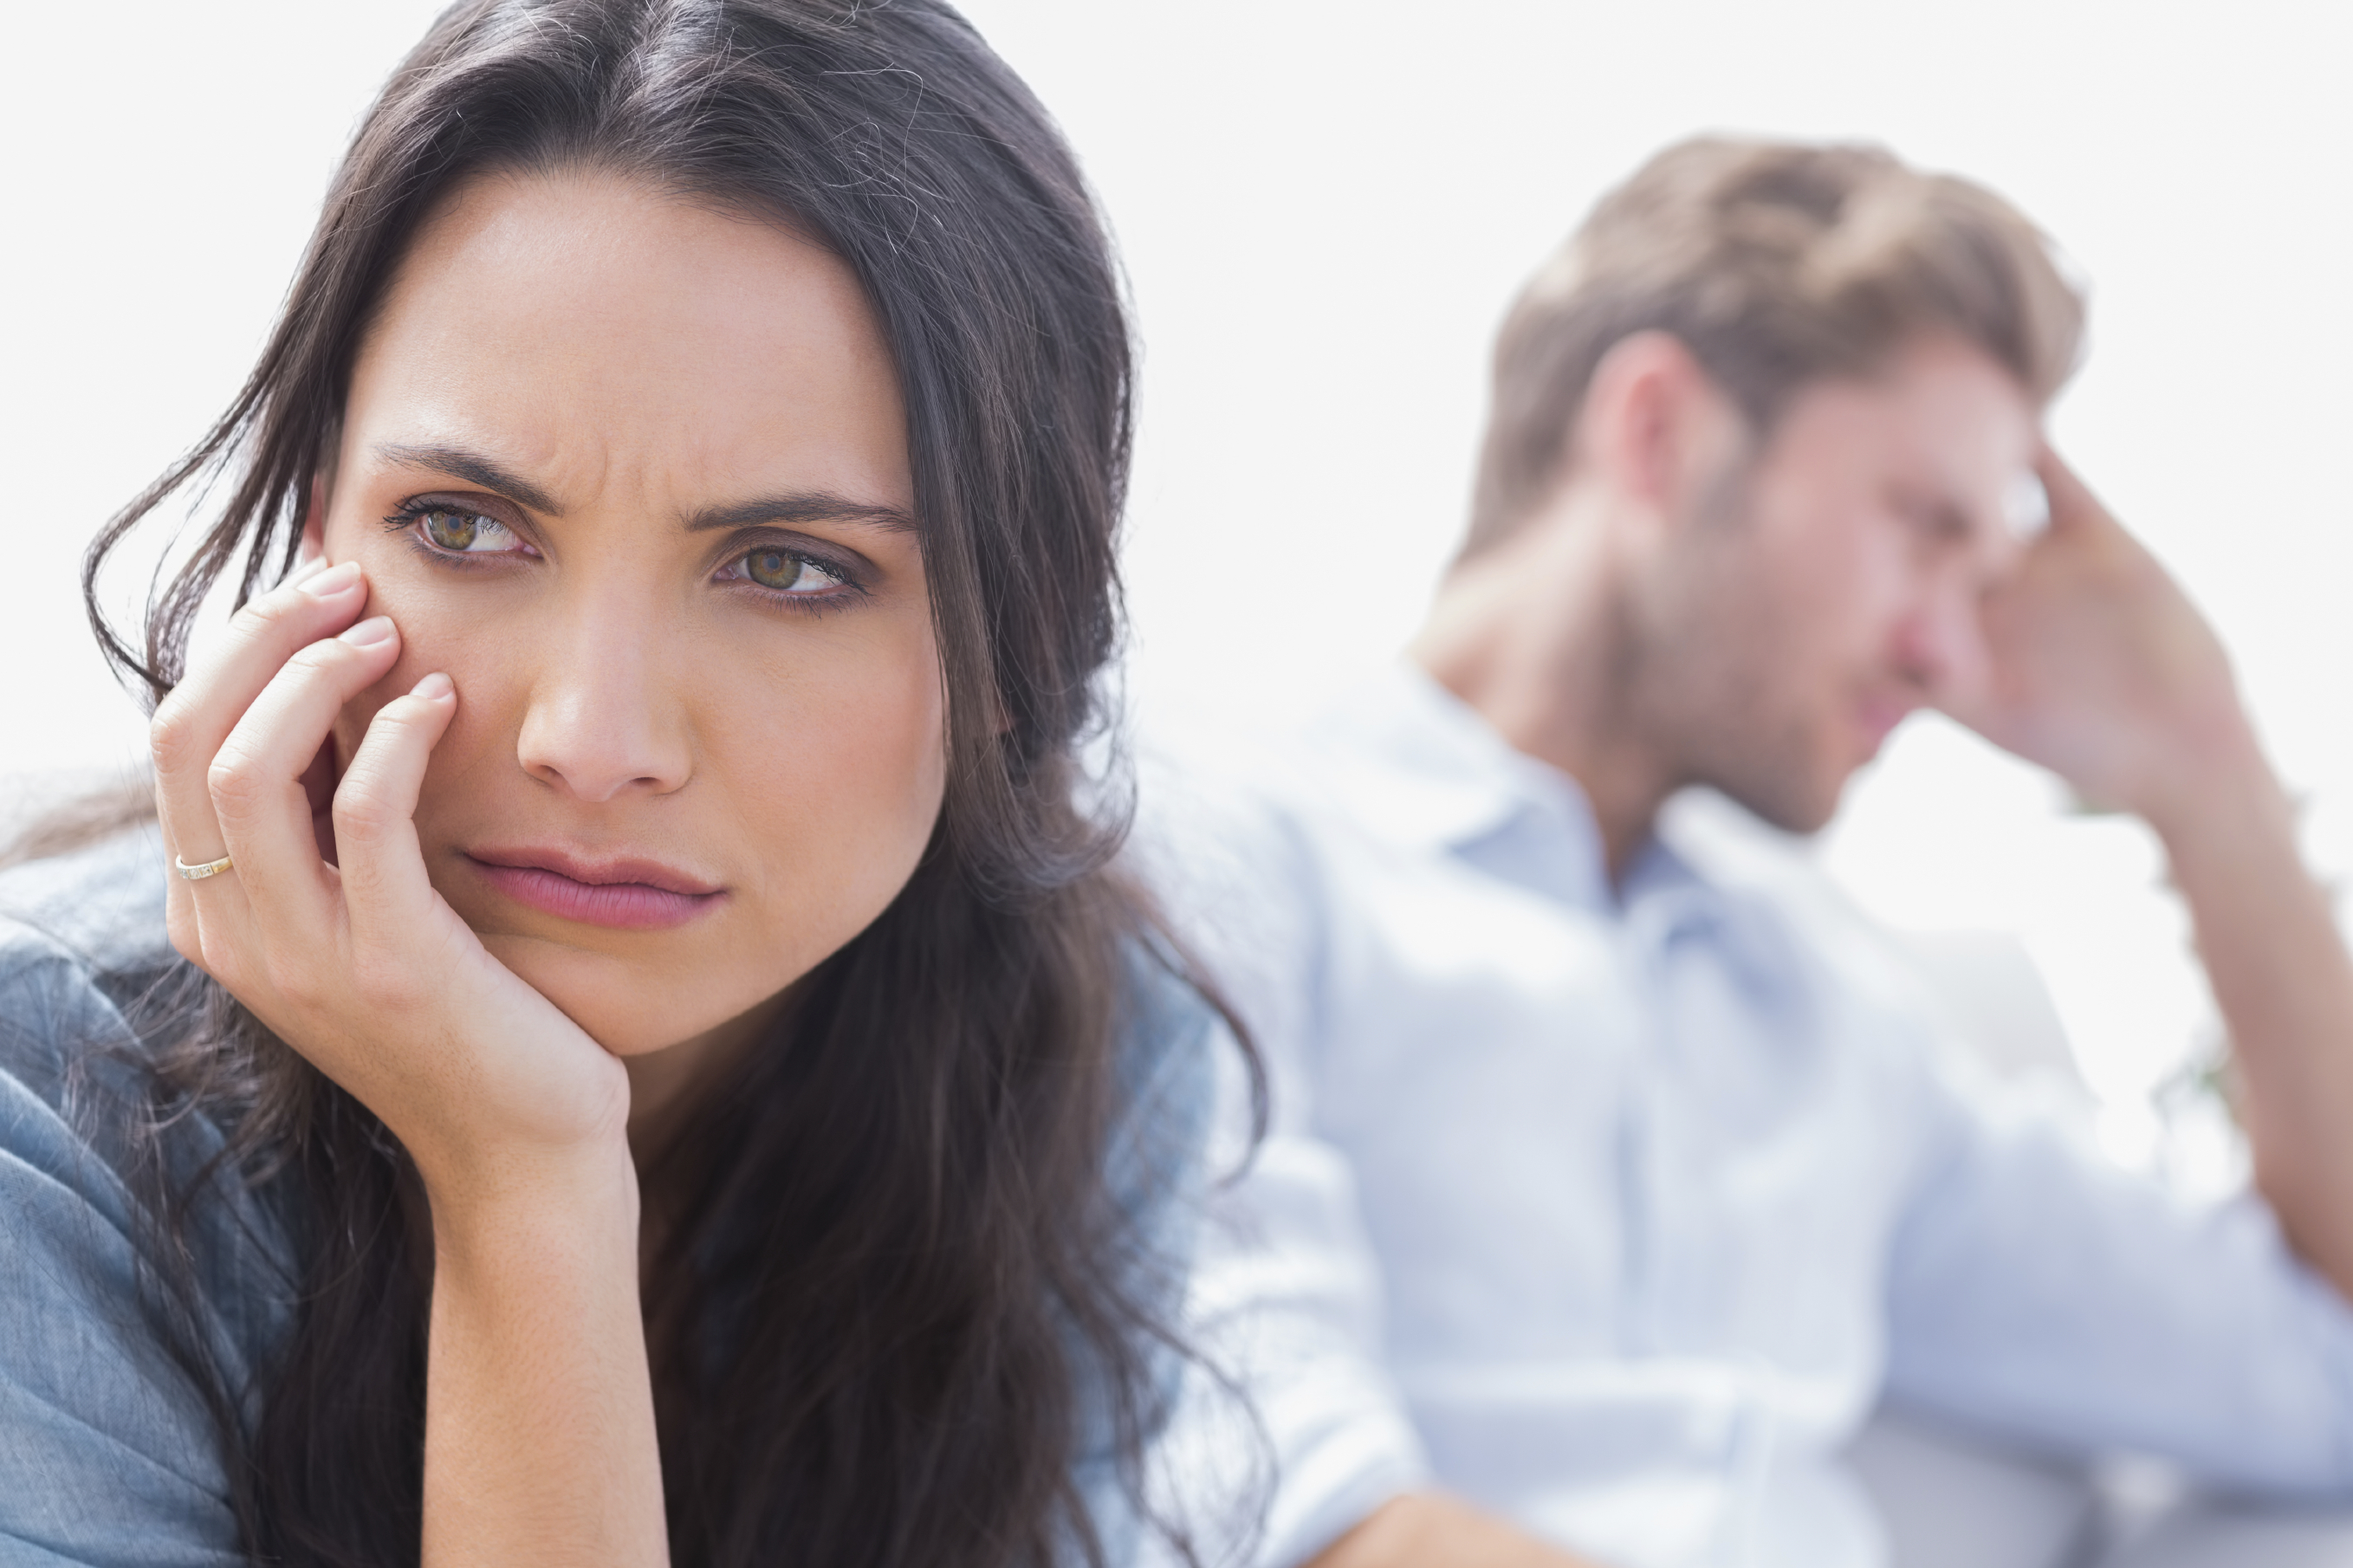 Is your wife worried about something? 3 things to NEVER say.